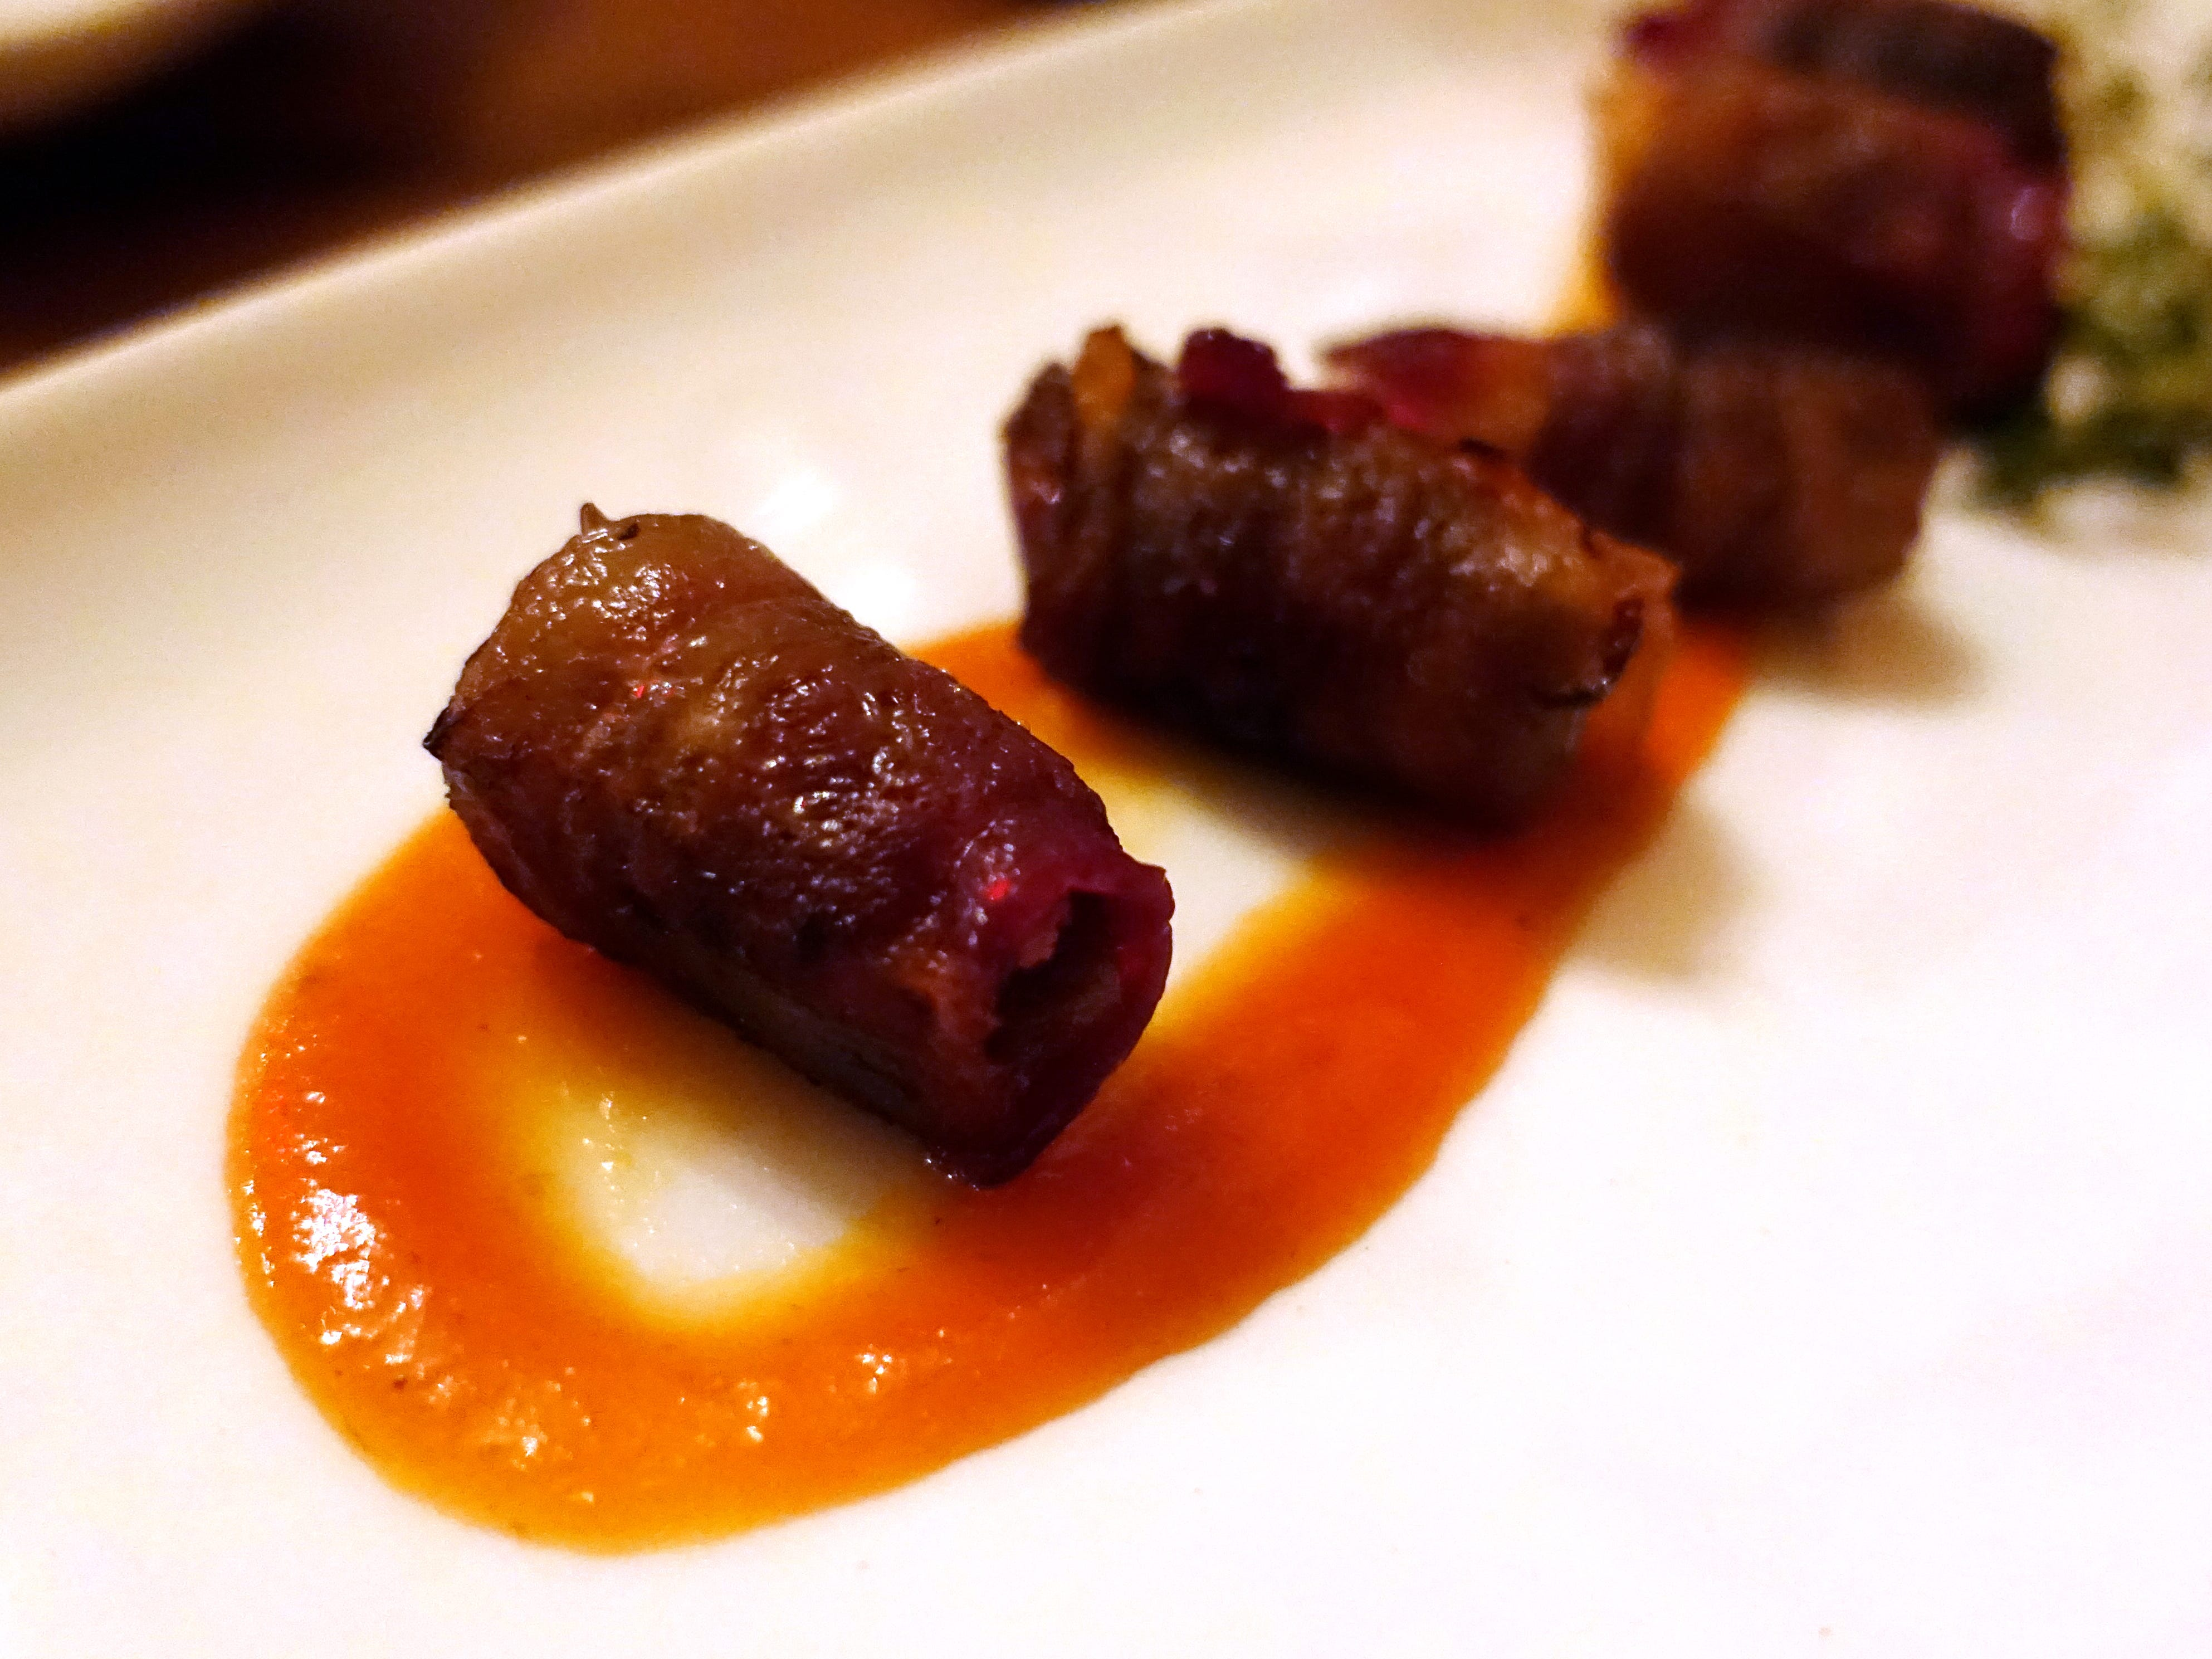 'The Dates' stuffed with Portuguese chorizo, wrapped in bacon with tomato jam at The Farish House in Phoenix.